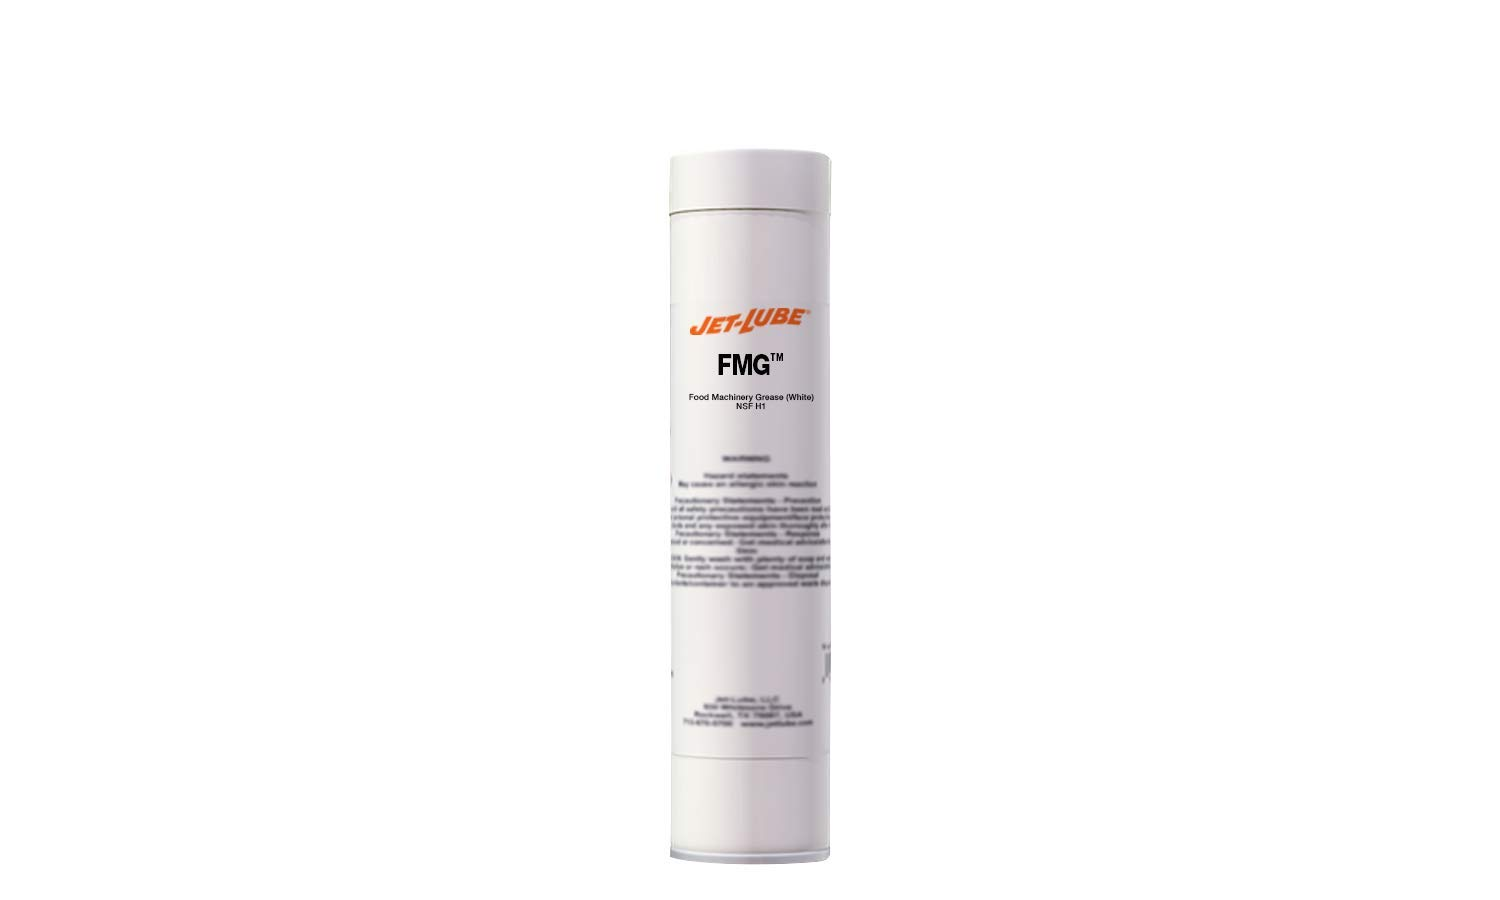 Jet-Lube FMG - Food Grade Lubricant | USDA Authorized | Water-Resistant | Anti-wear